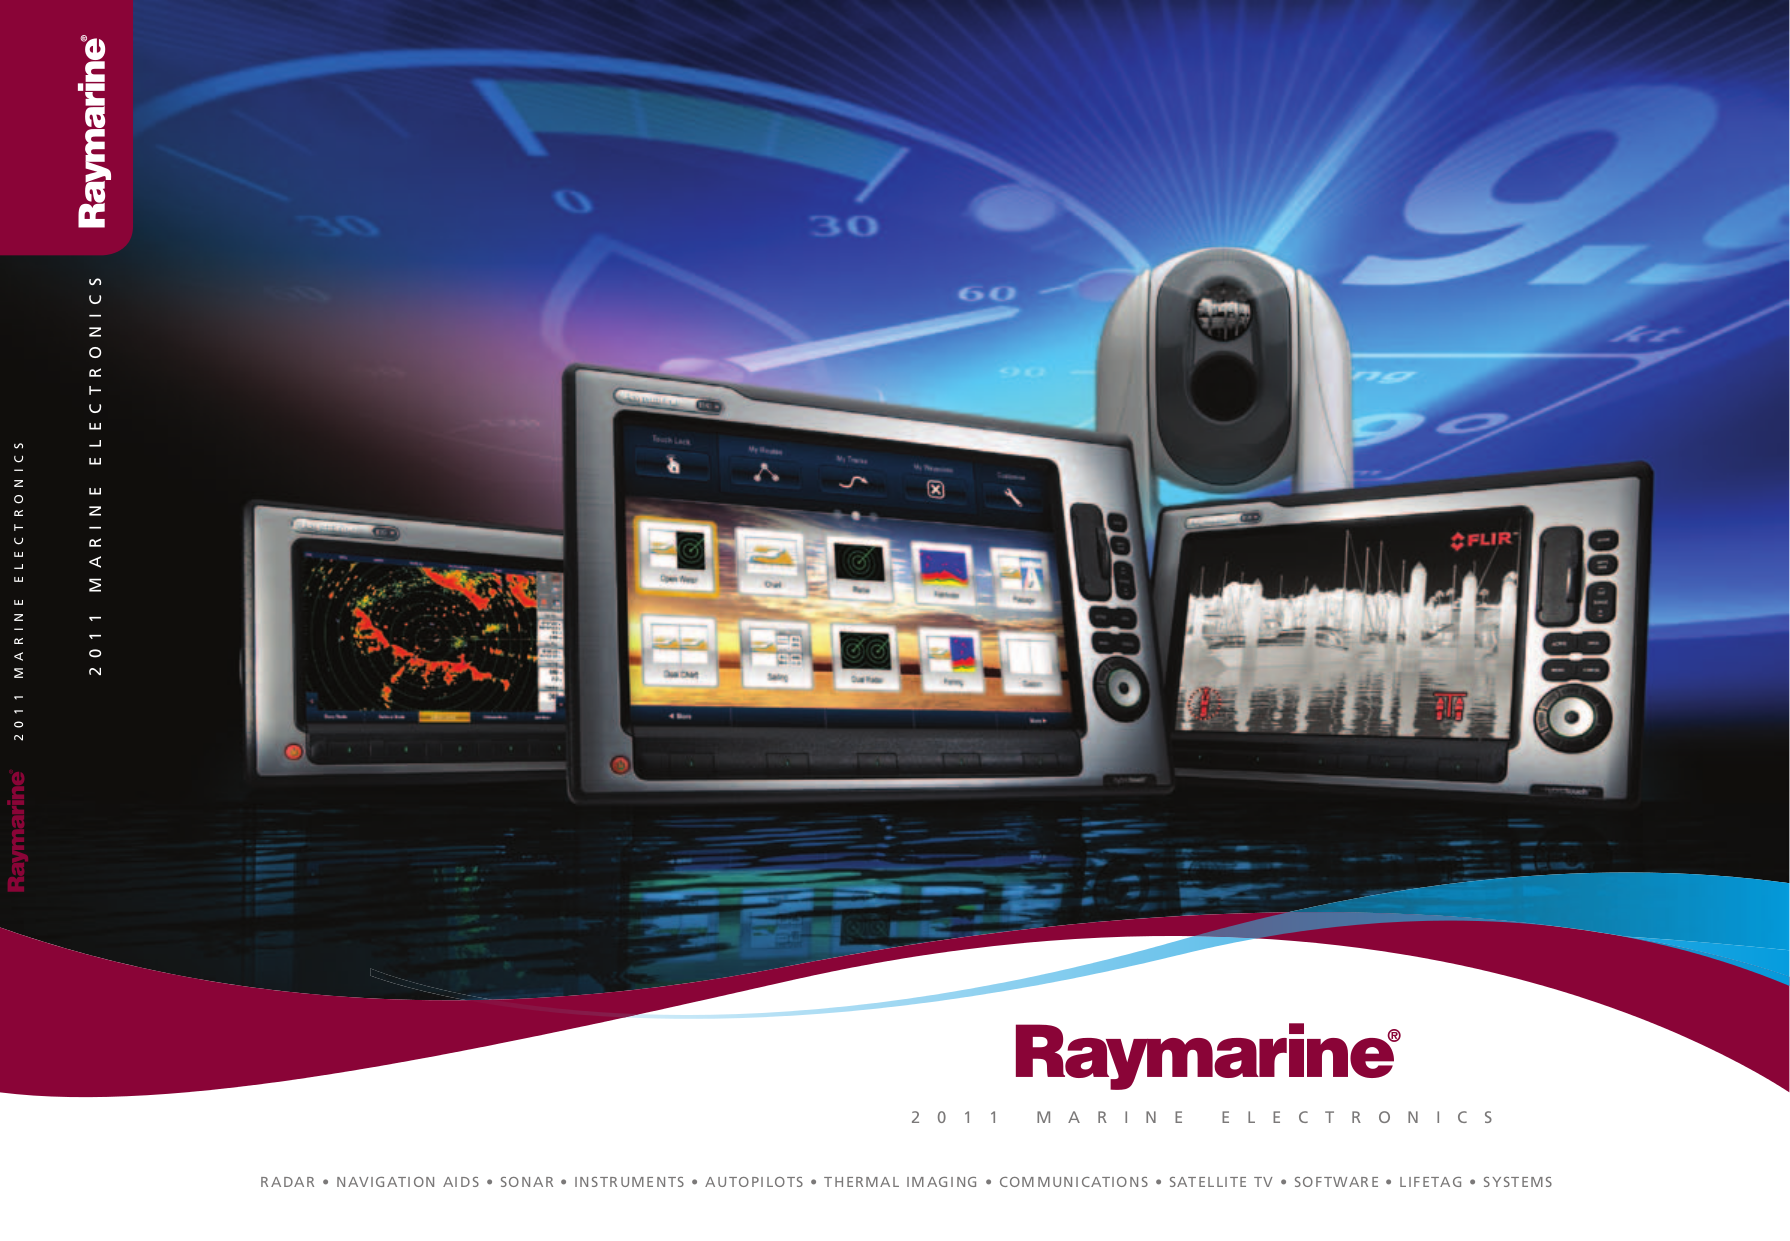 PDF manual for Raymarine Other Apelco 260 fishfinder